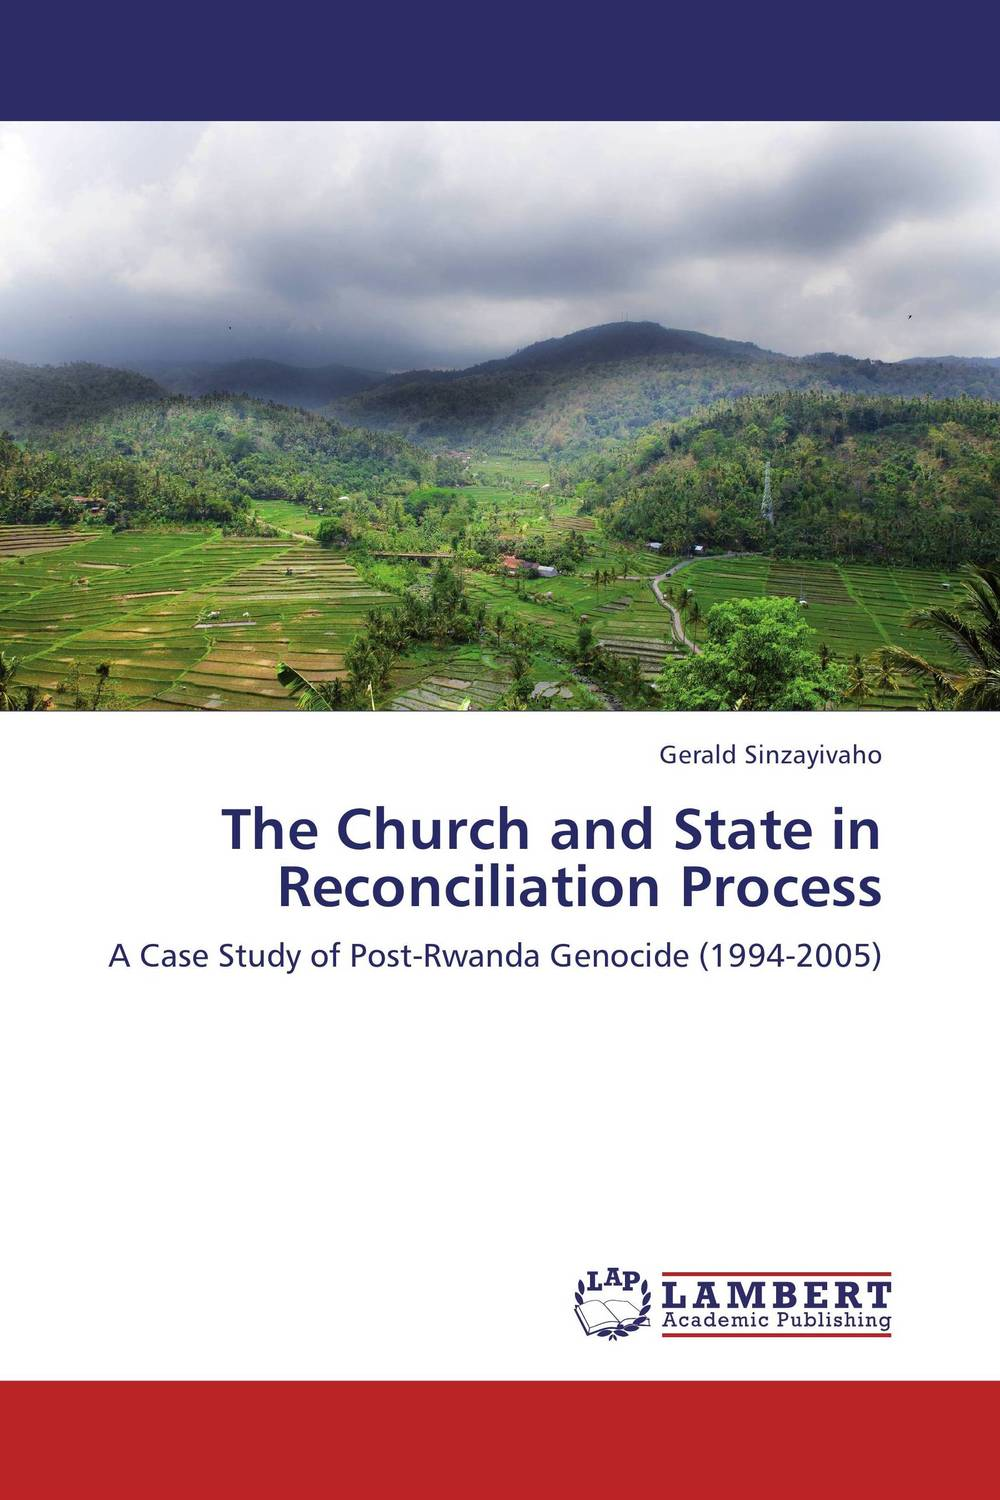 The Church and State in Reconciliation Process sahar bazzaz forgotten saints – history power and politics in the making of modern morocco